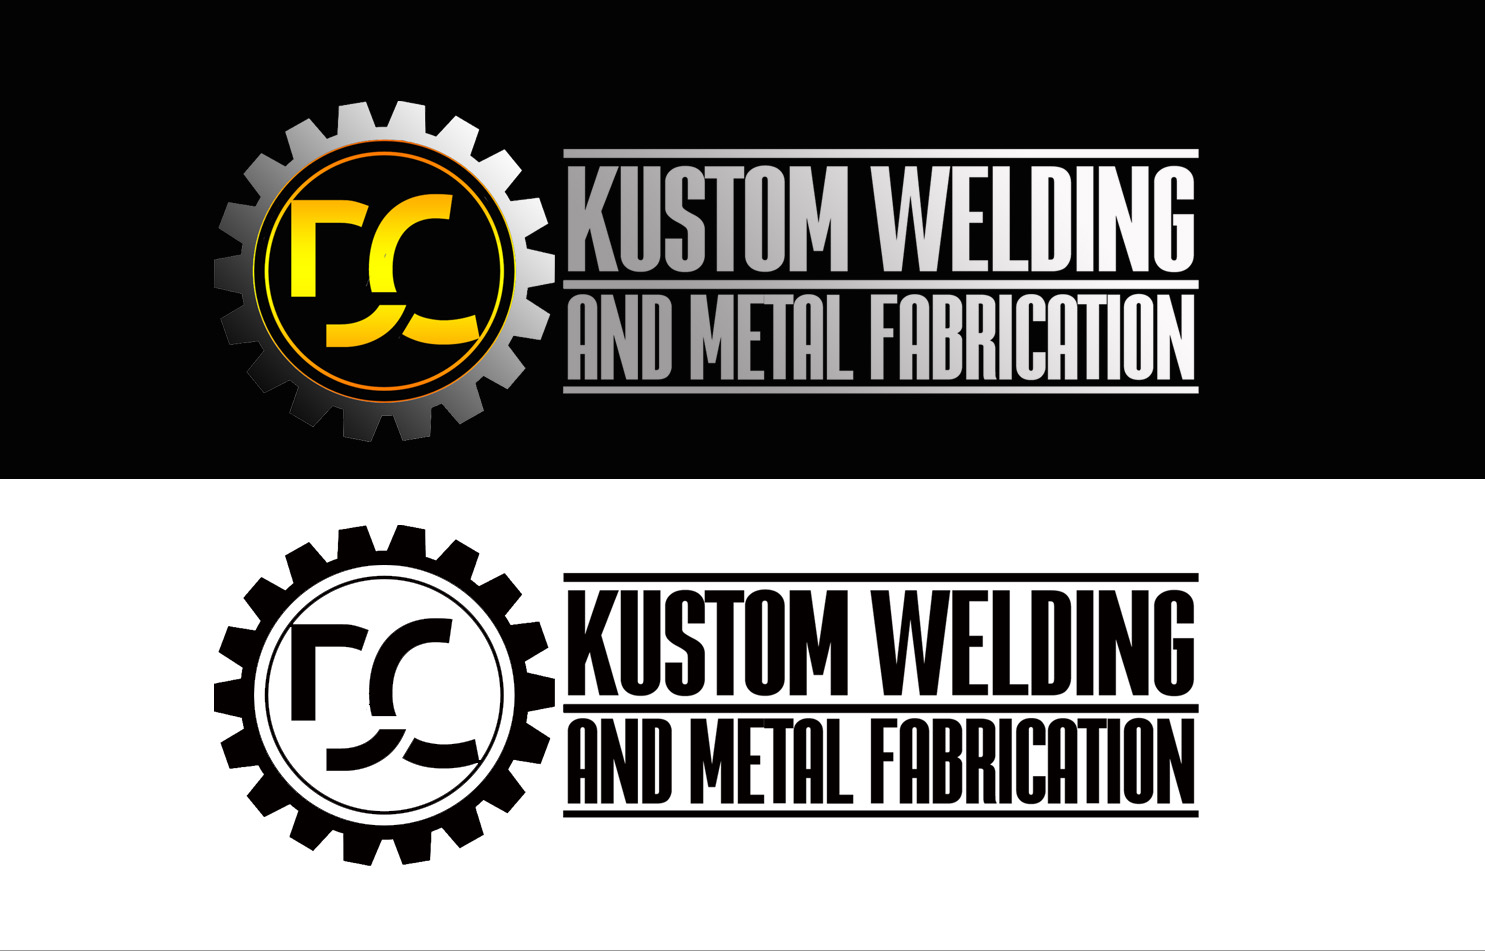 Logo Design by Arqui ACOSTA - Entry No. 107 in the Logo Design Contest Imaginative Logo Design for DC KUSTOM WELDING & METAL FABRICATION.